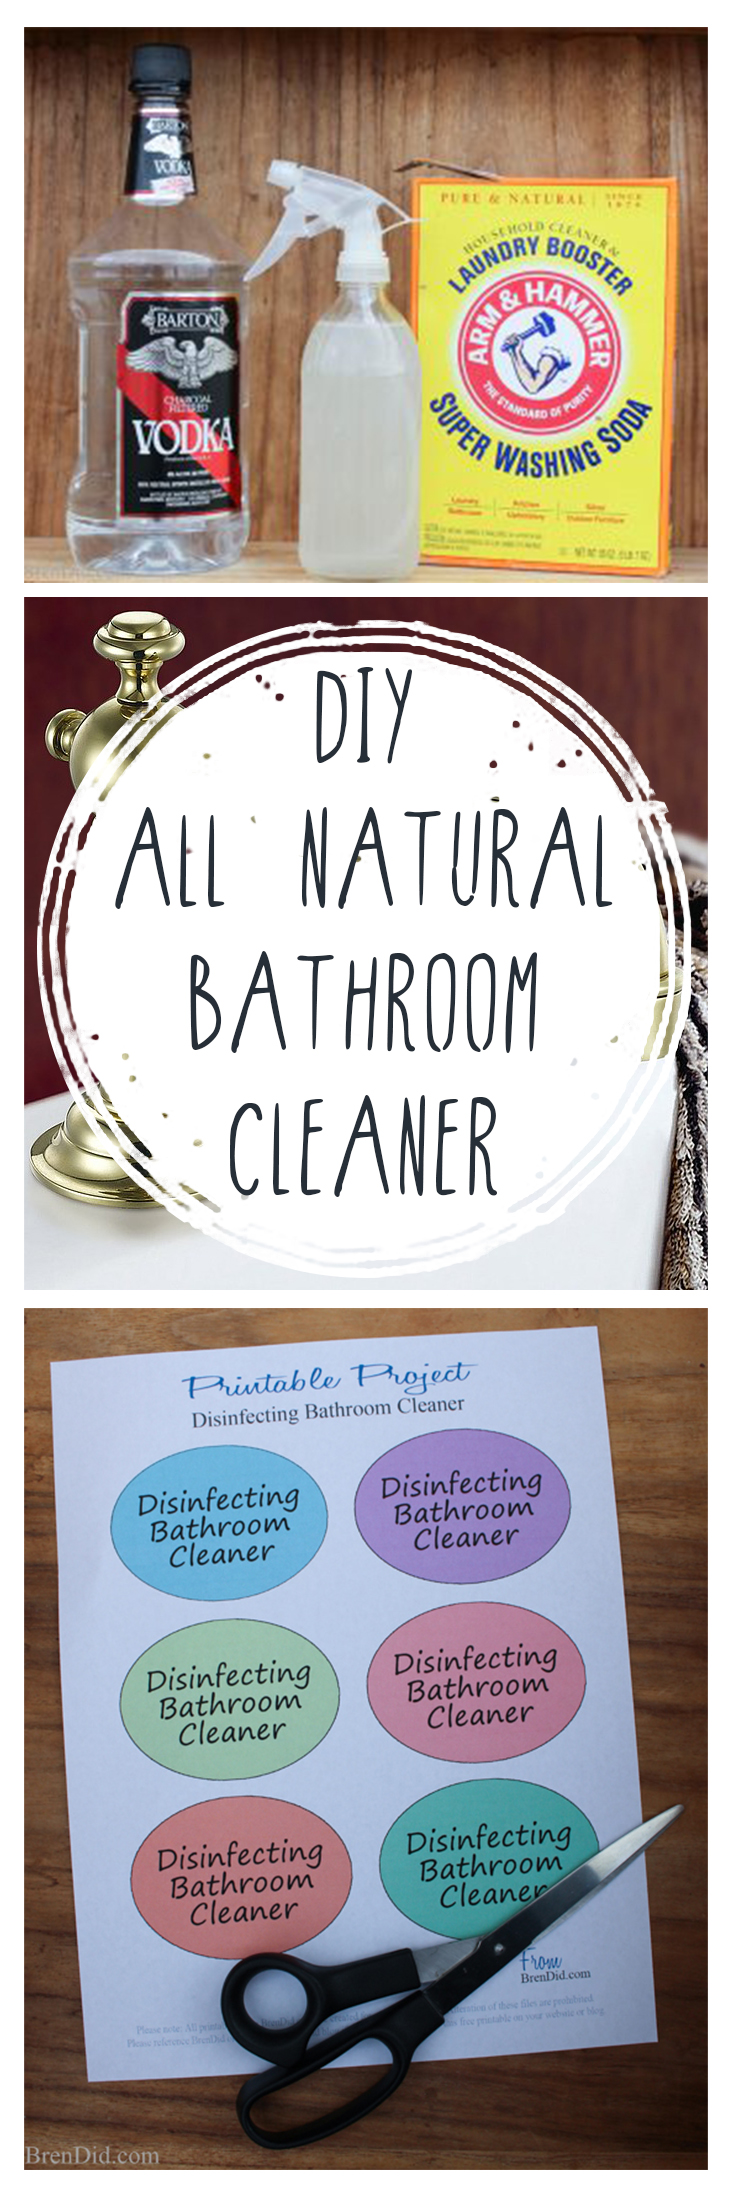 diy all natural bathroom cleaner - Bathroom Cleaning Hacks